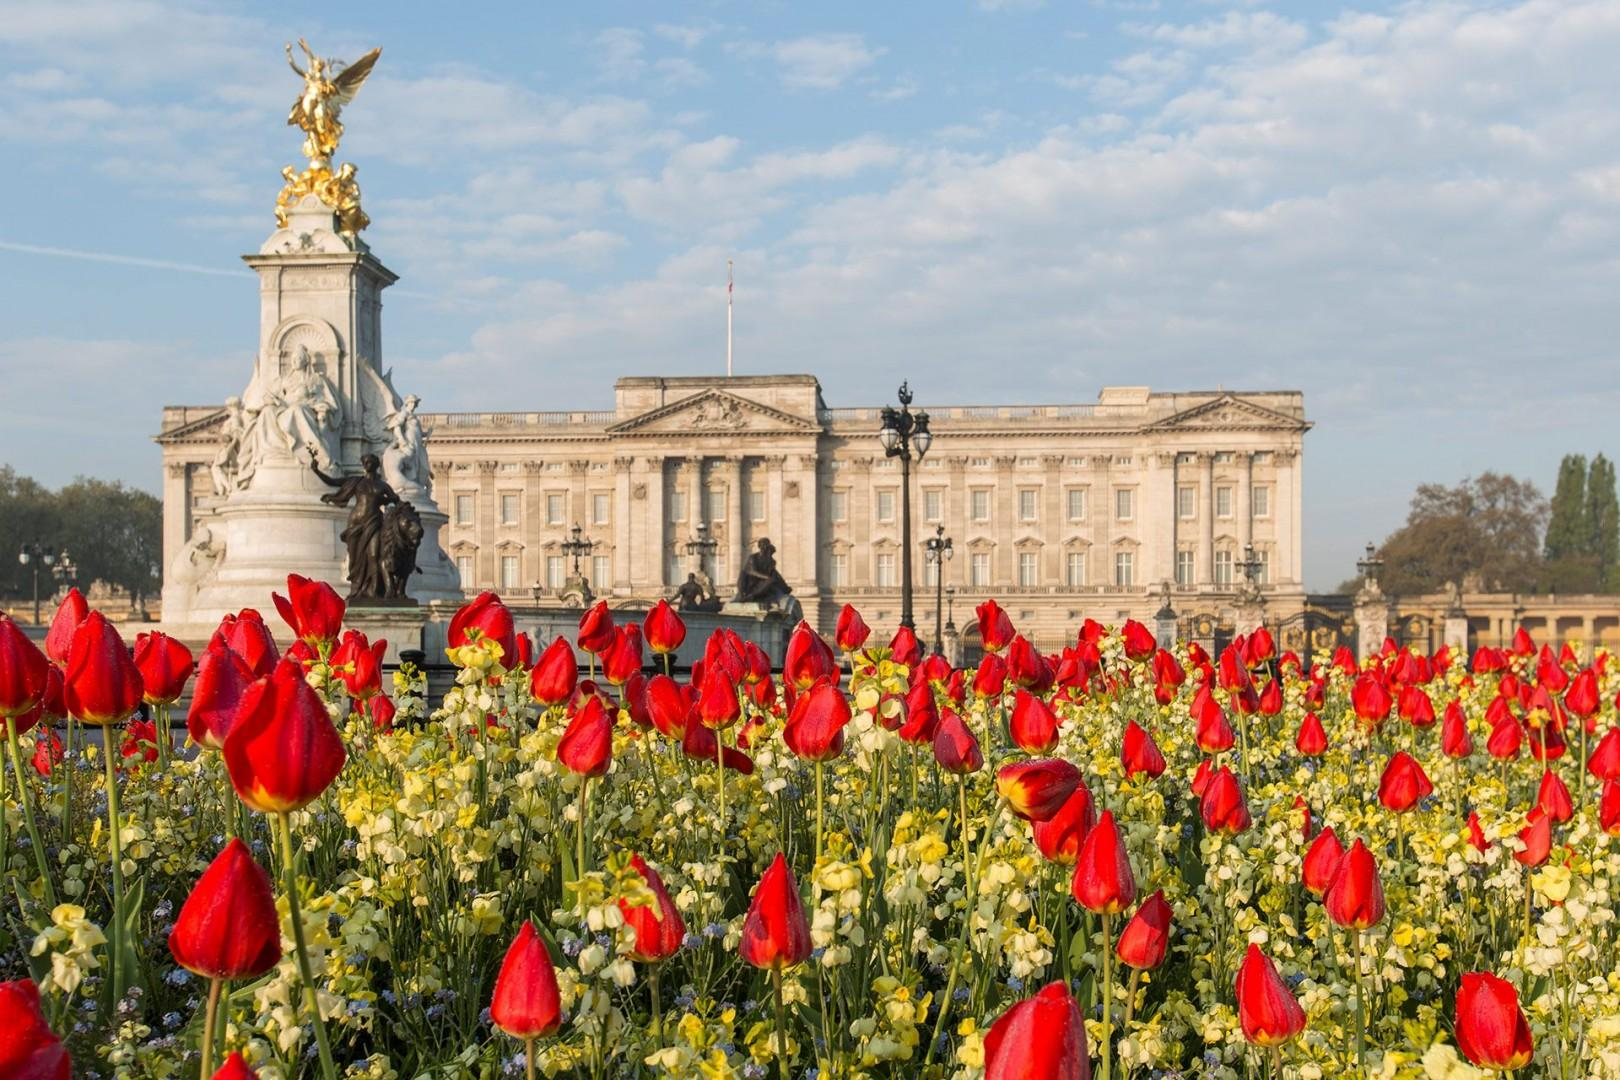 CMS-56-(Buckingham Palace is surrounded by beautiful gardens!)-26080434-1509438620-buckingham-palace-flowers-statue